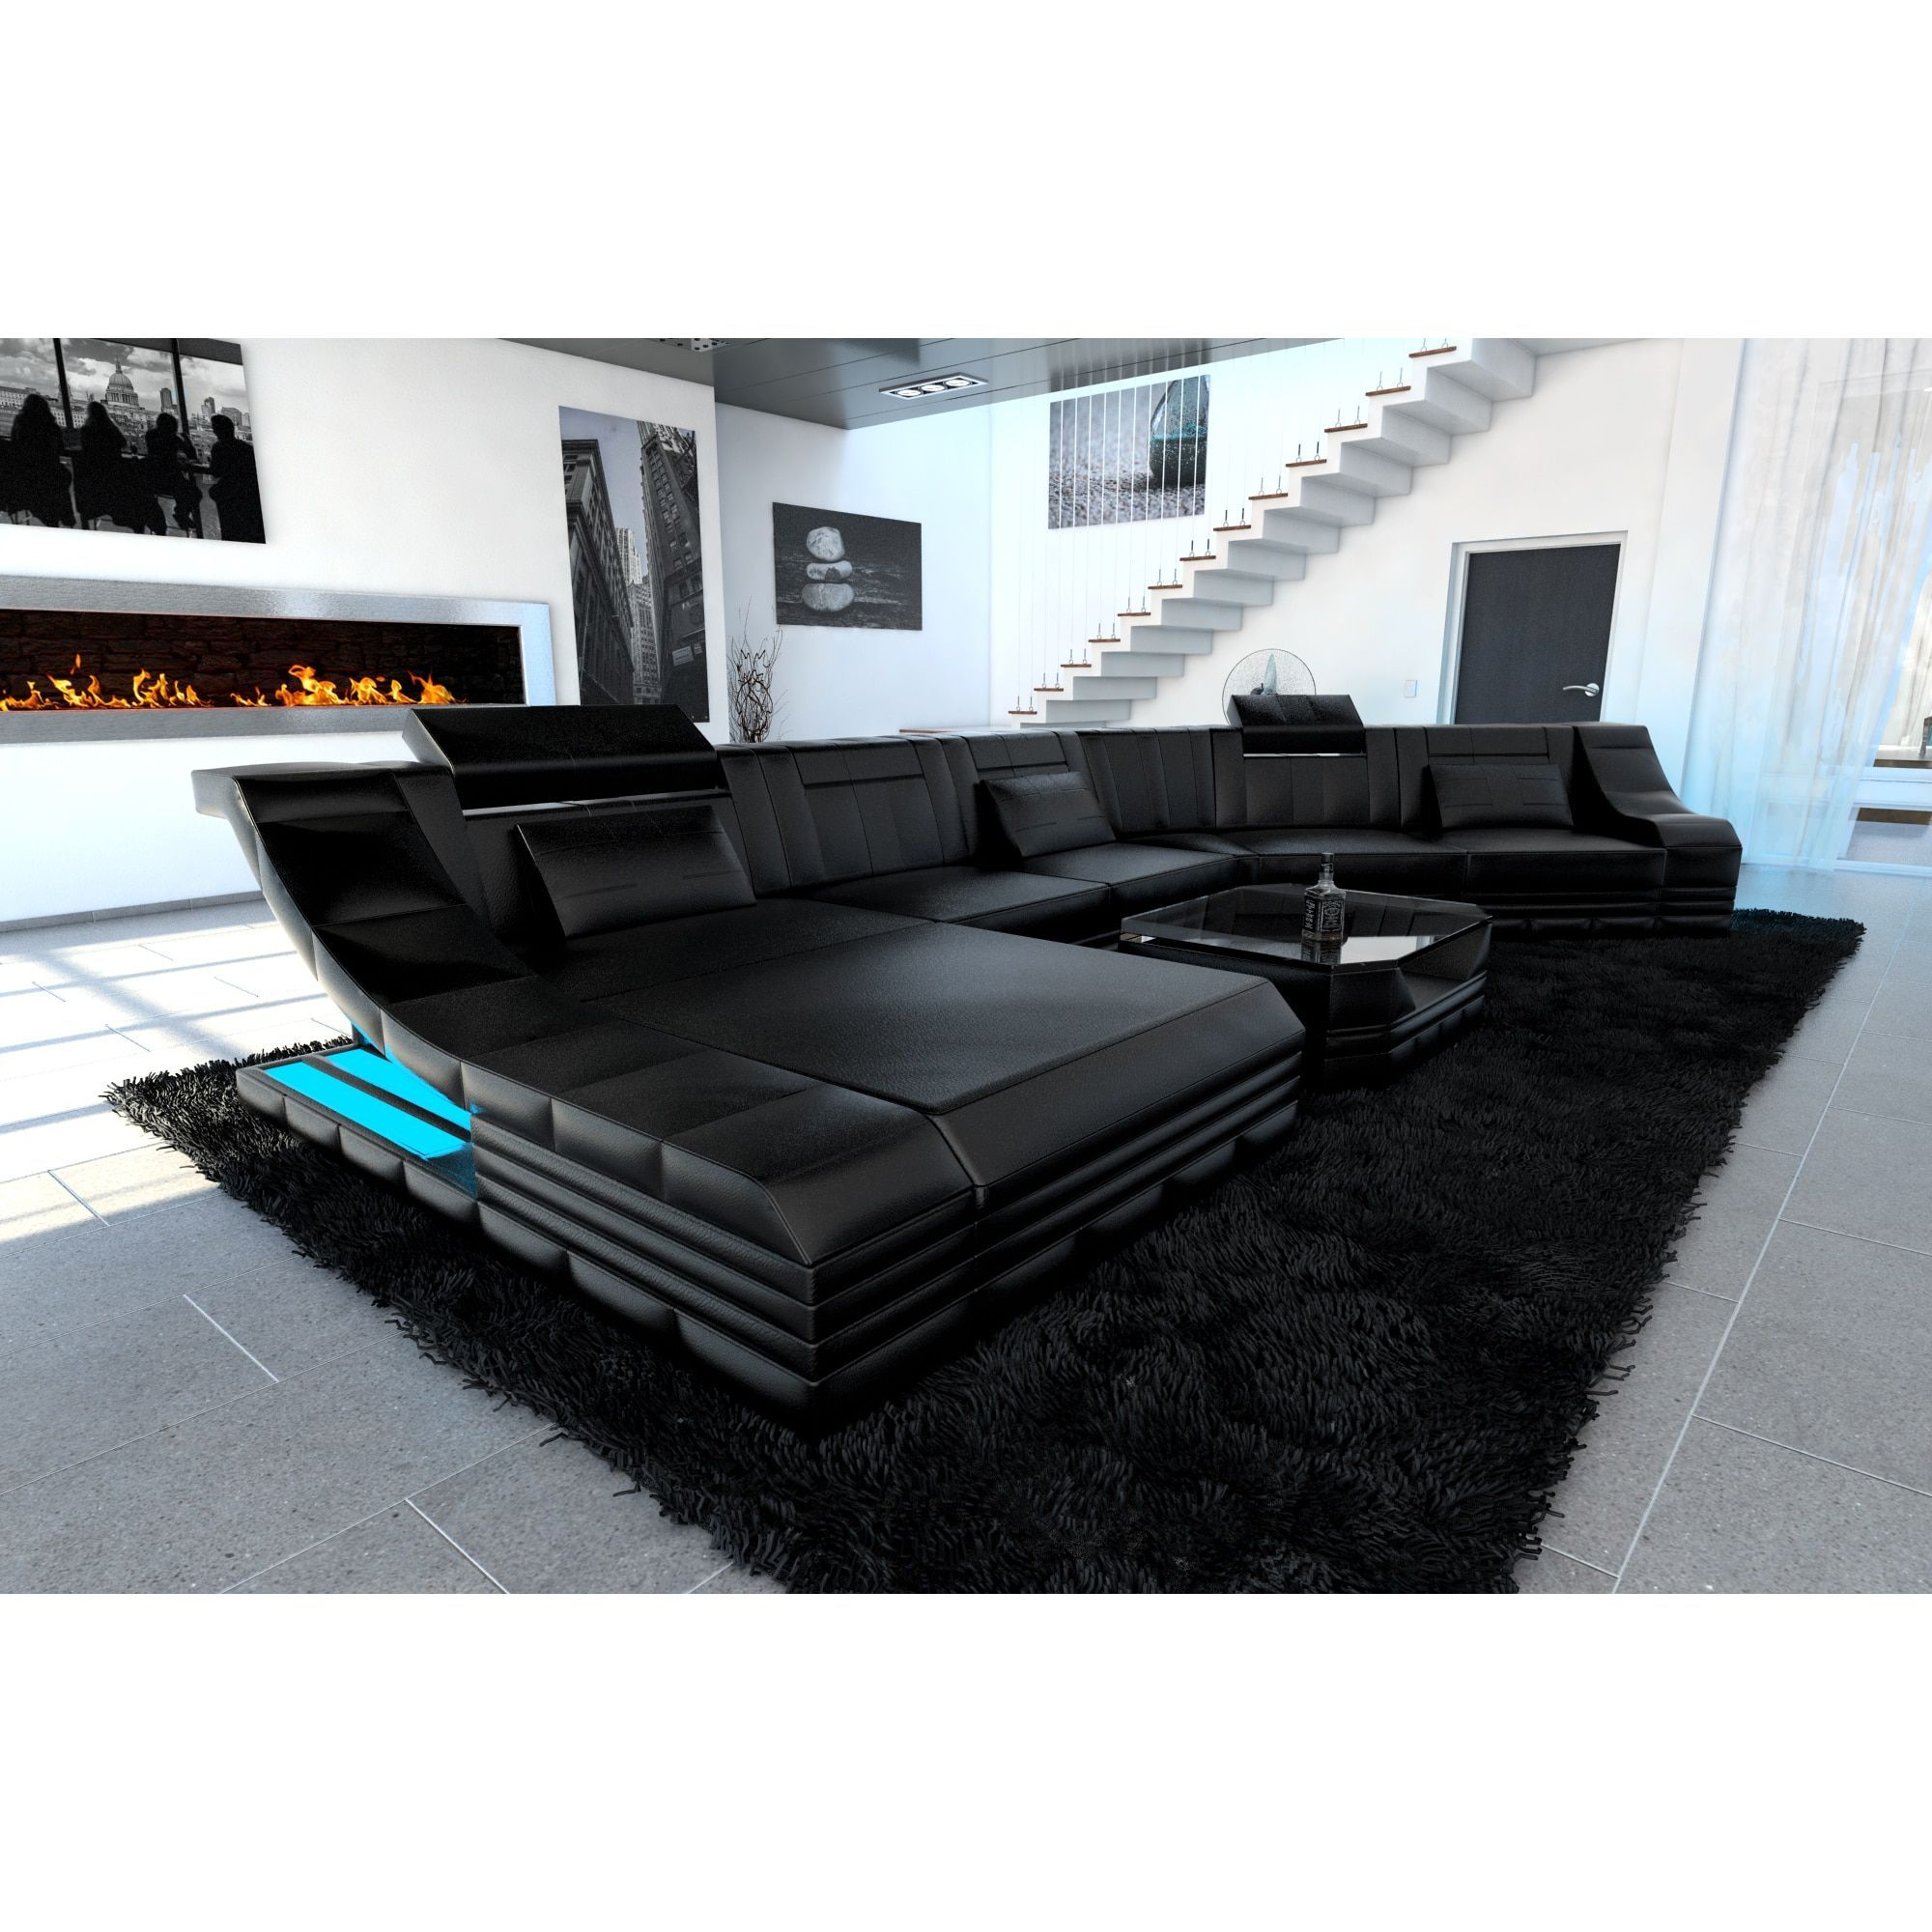 Luxury Sectional Sofa New York CL LED Lights Sectional Sofa Black